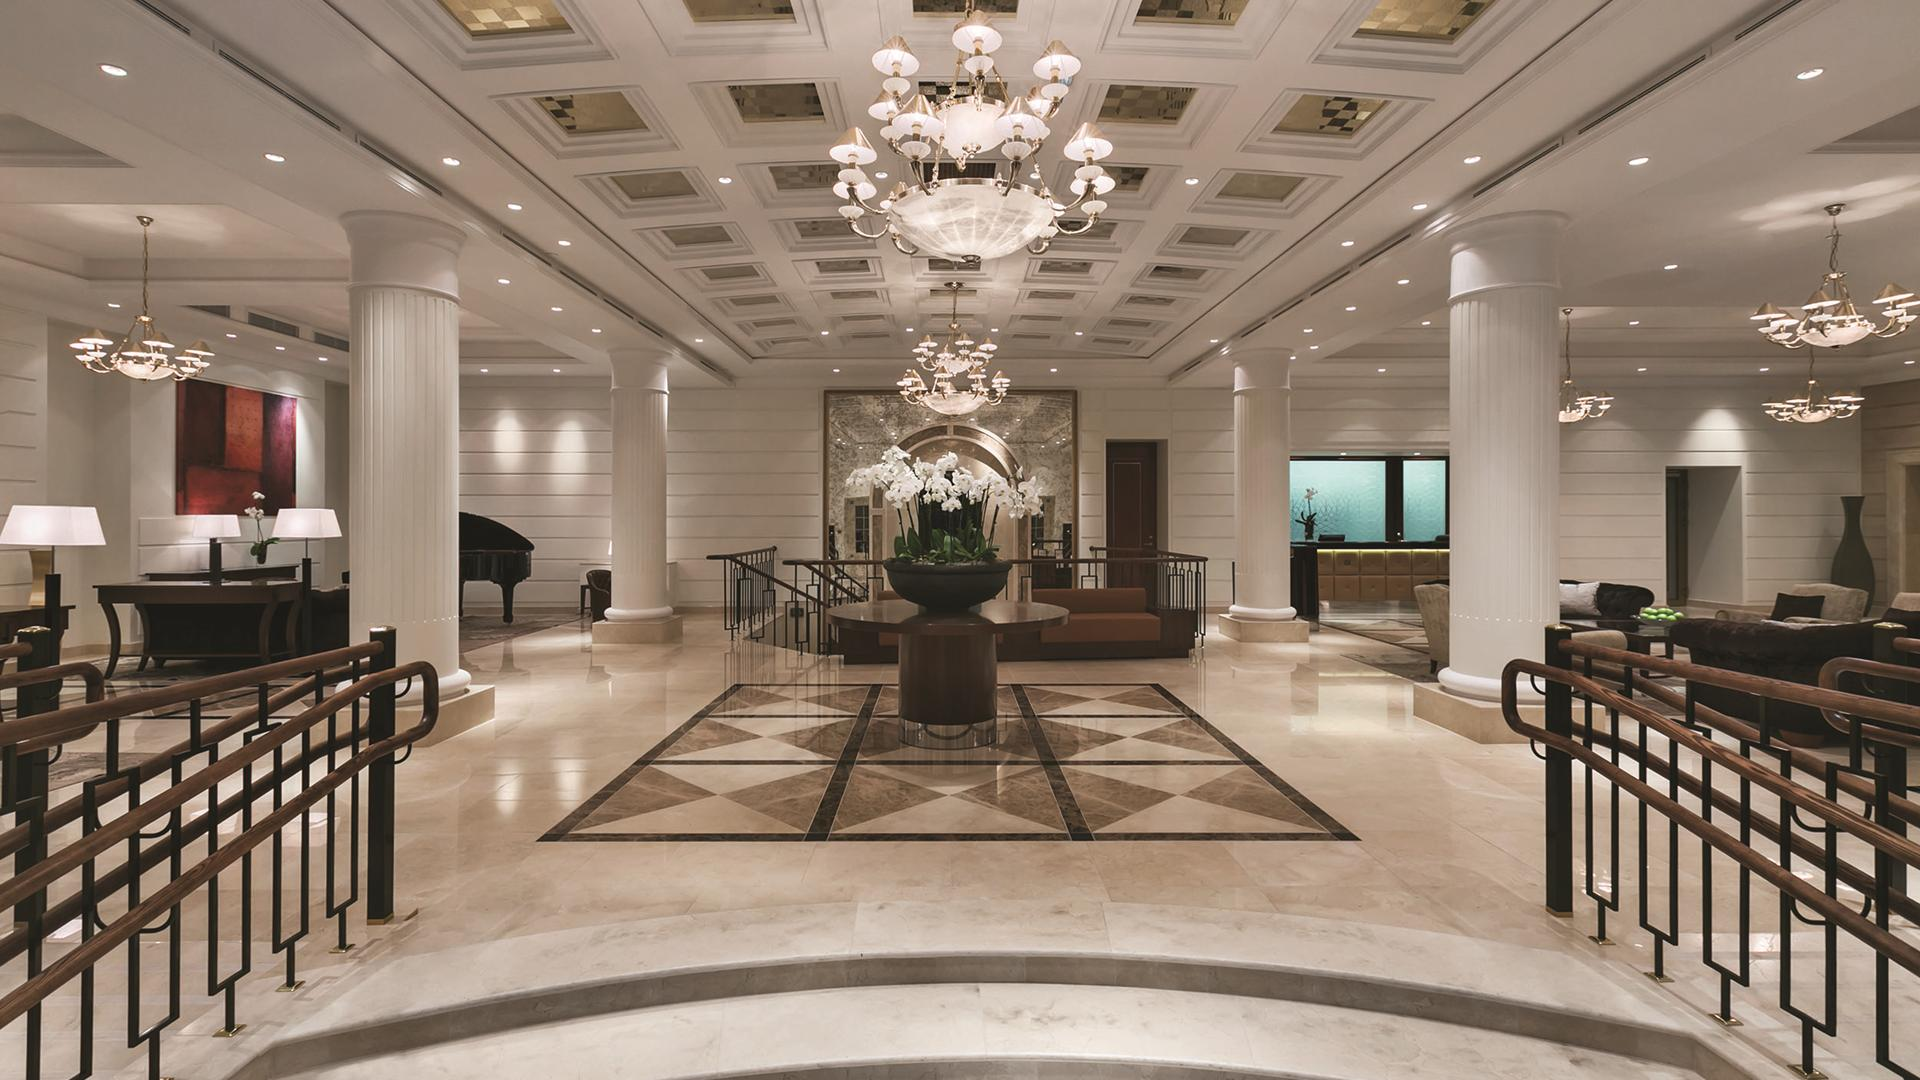 Lobby_lounge2.jpg;width=1920;height=1080;mode=crop;anchor=middlecenter;autorotate=true;quality=90;scale=both;progressive=true;encoder=freeimage